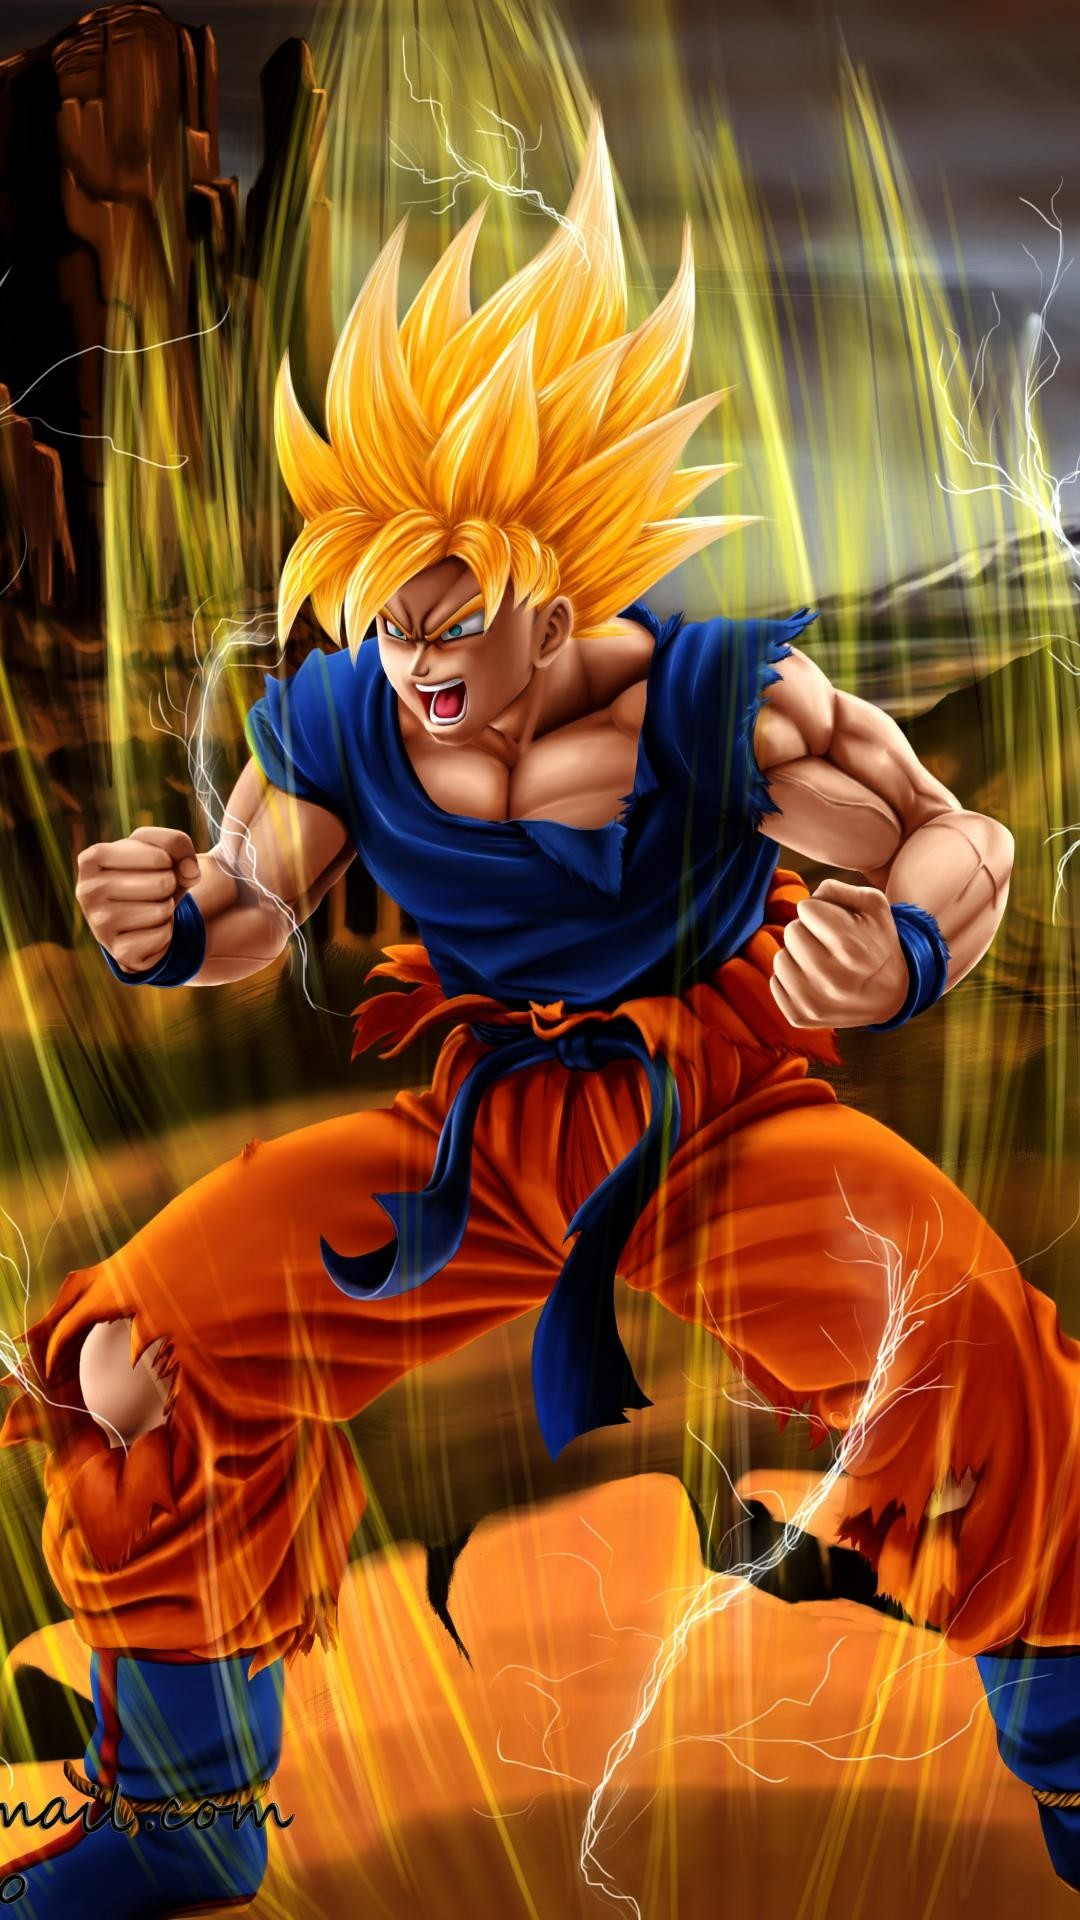 Dragon ball z phone wallpaper 65 images - 3d wallpaper of dragon ball z ...